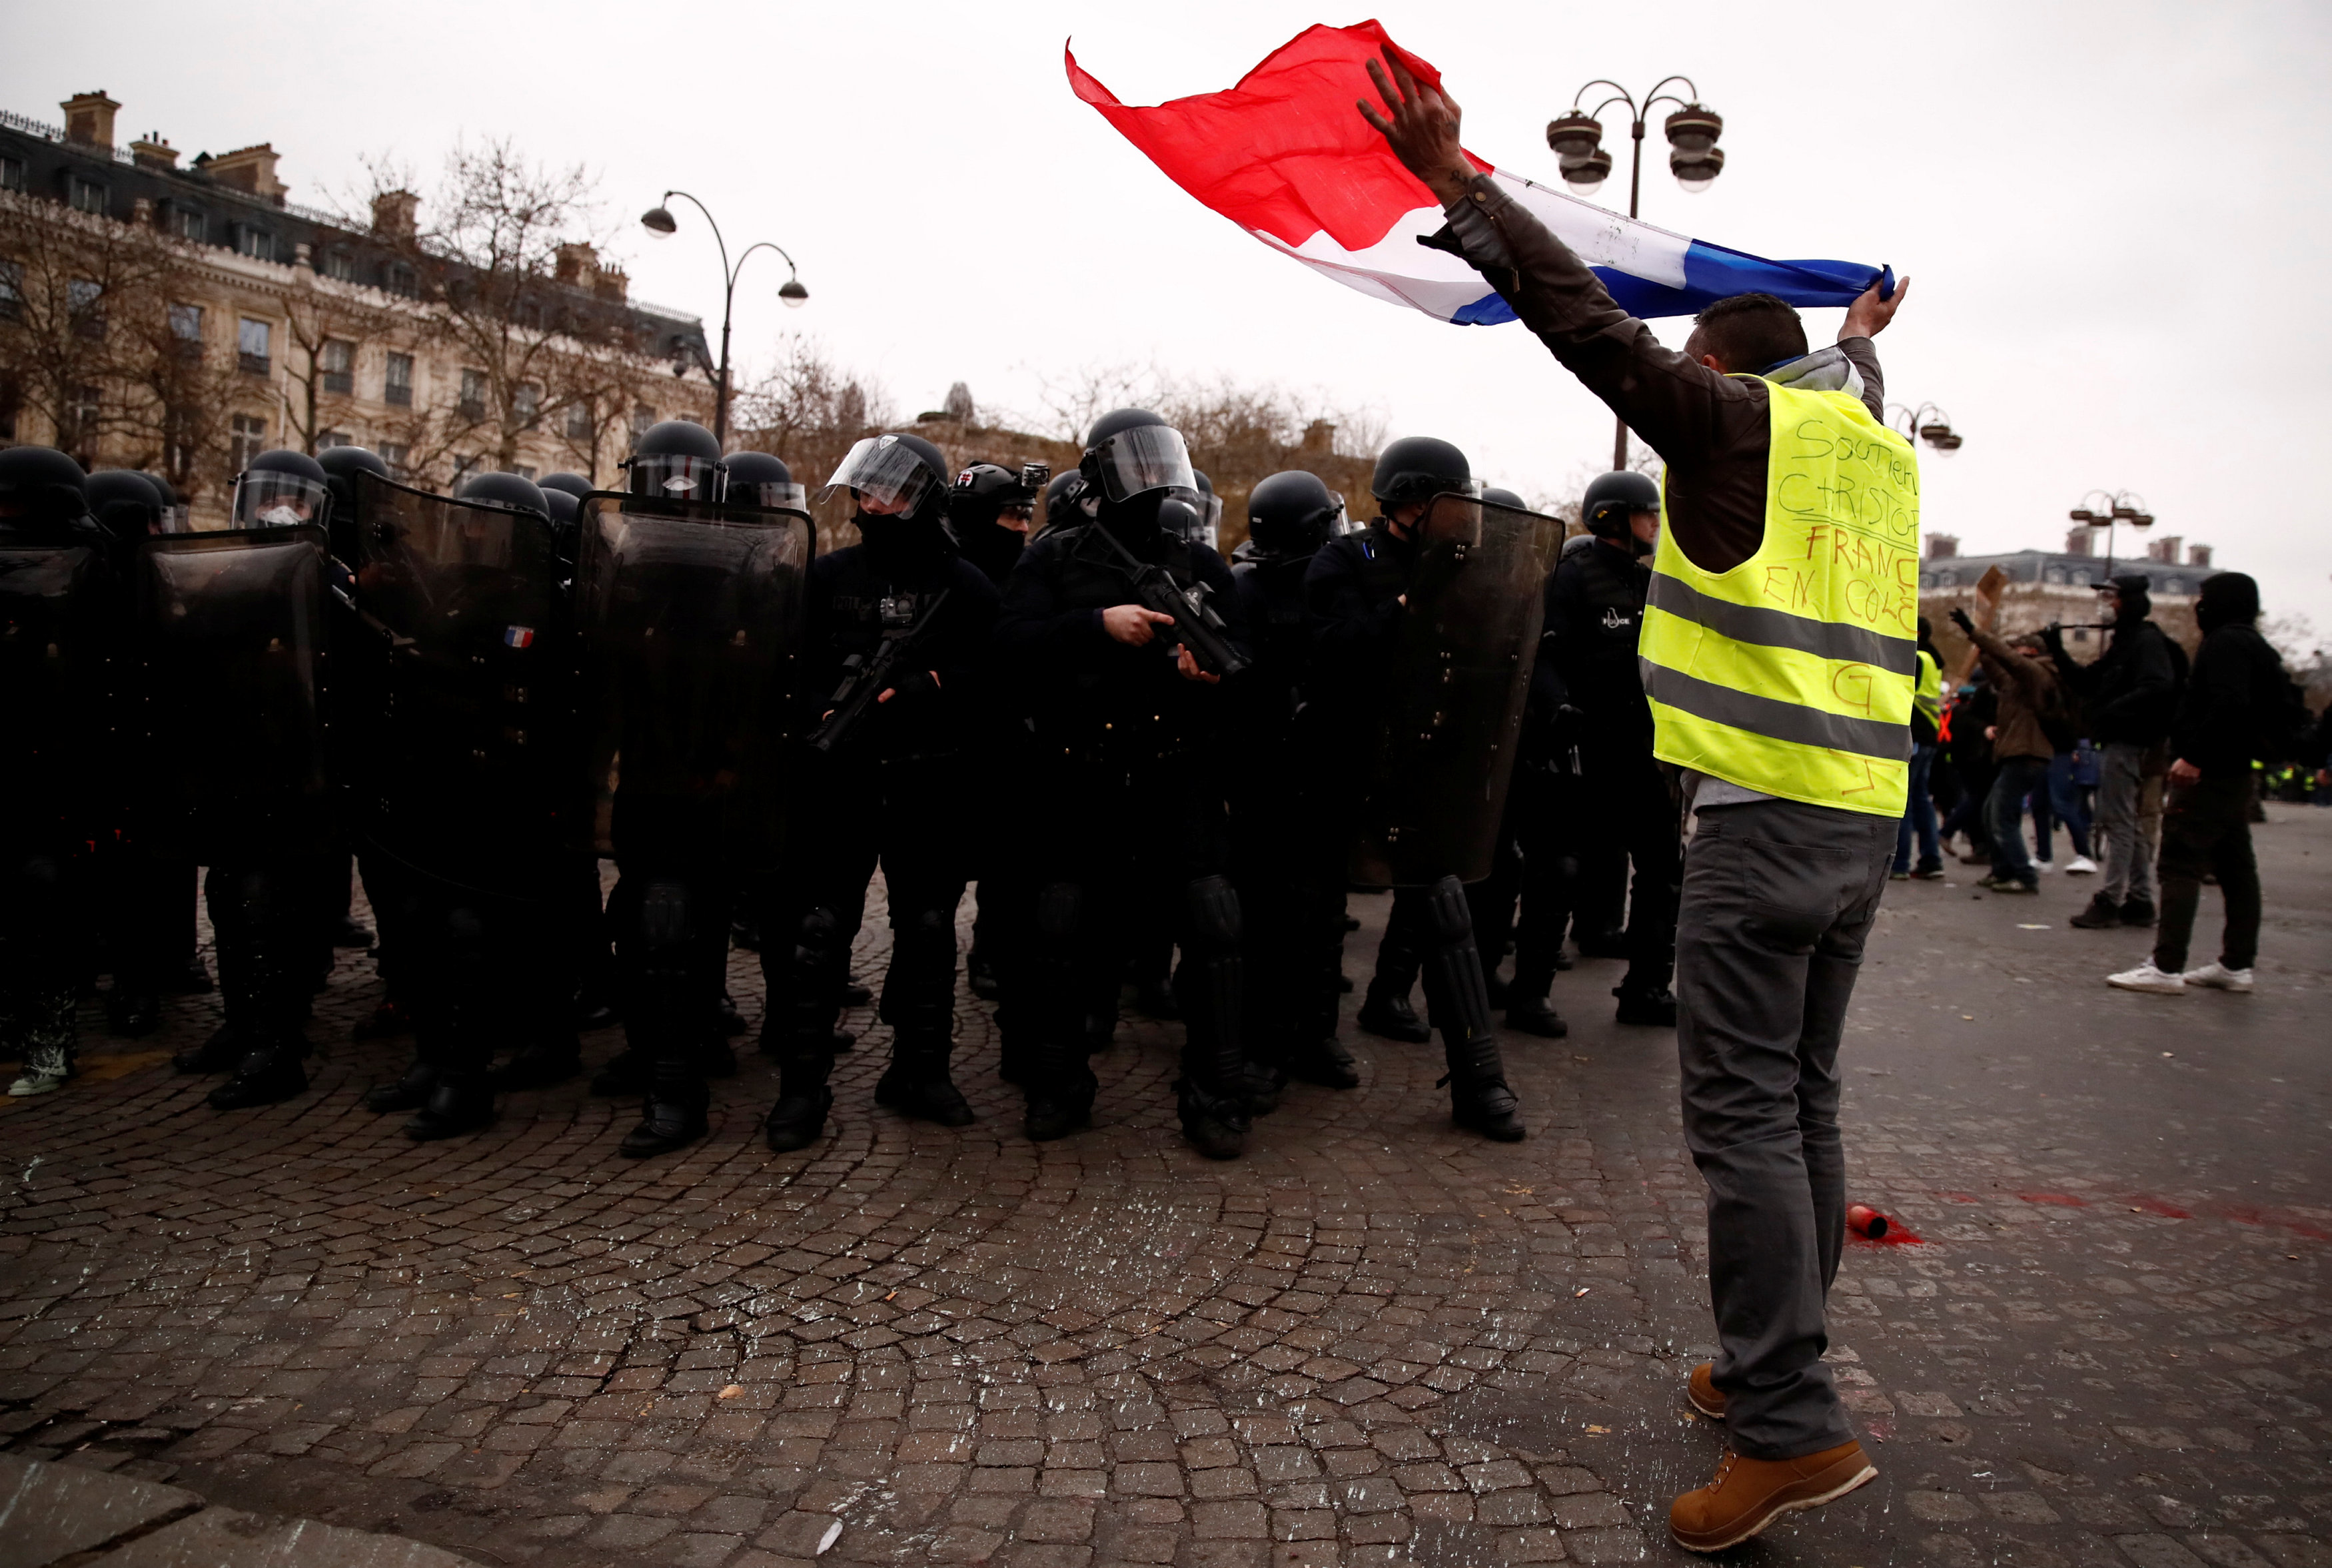 2019-01-12T143327Z_390381077_RC19436F3980_RTRMADP_3_FRANCE-PROTESTS